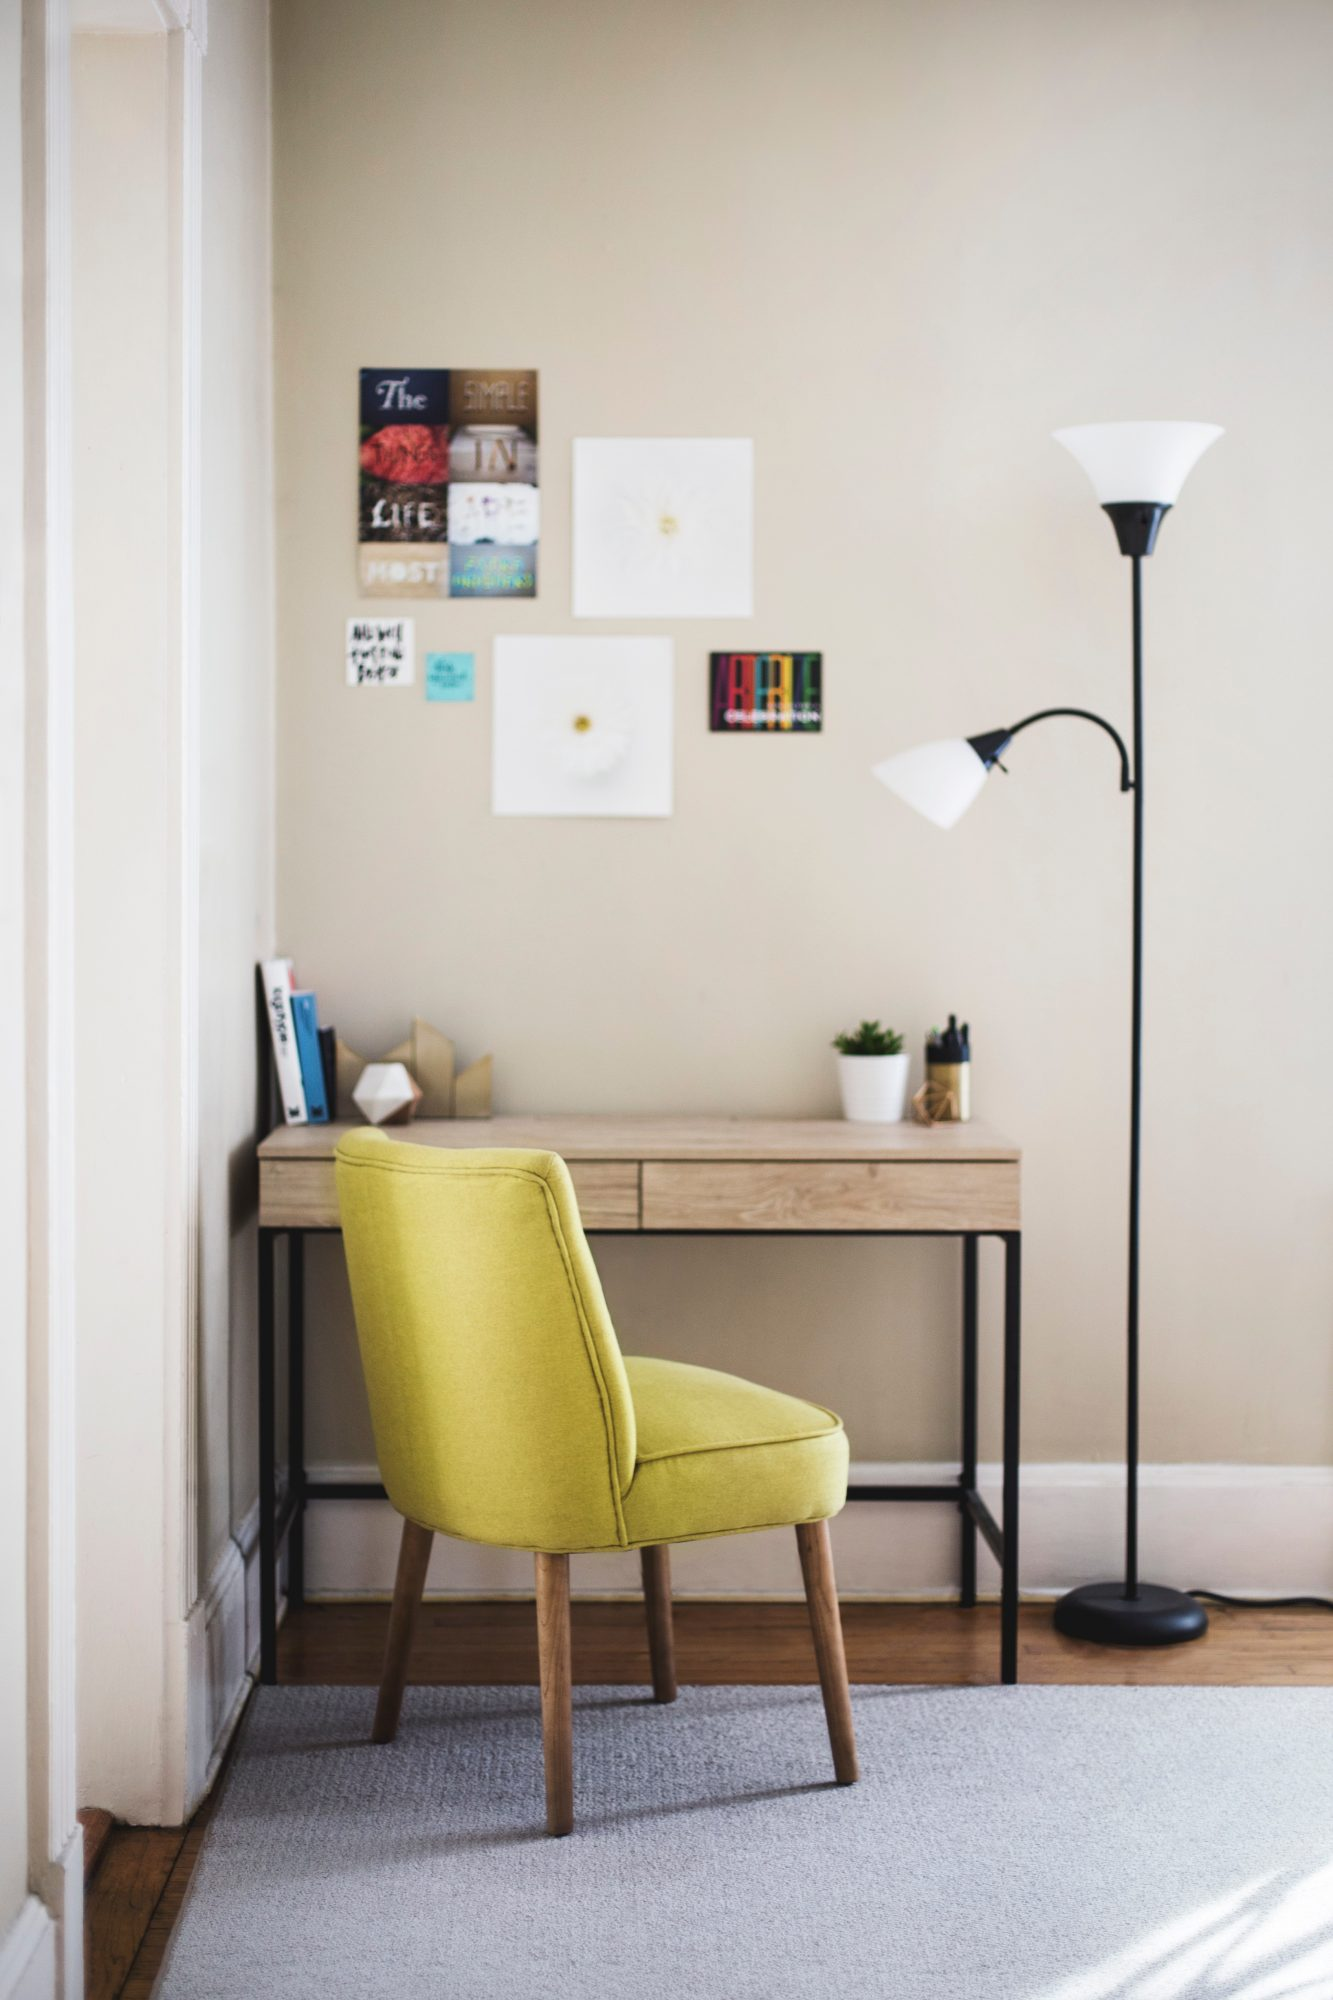 Home Design Ideas App: 17 Surprising Home Office Ideas